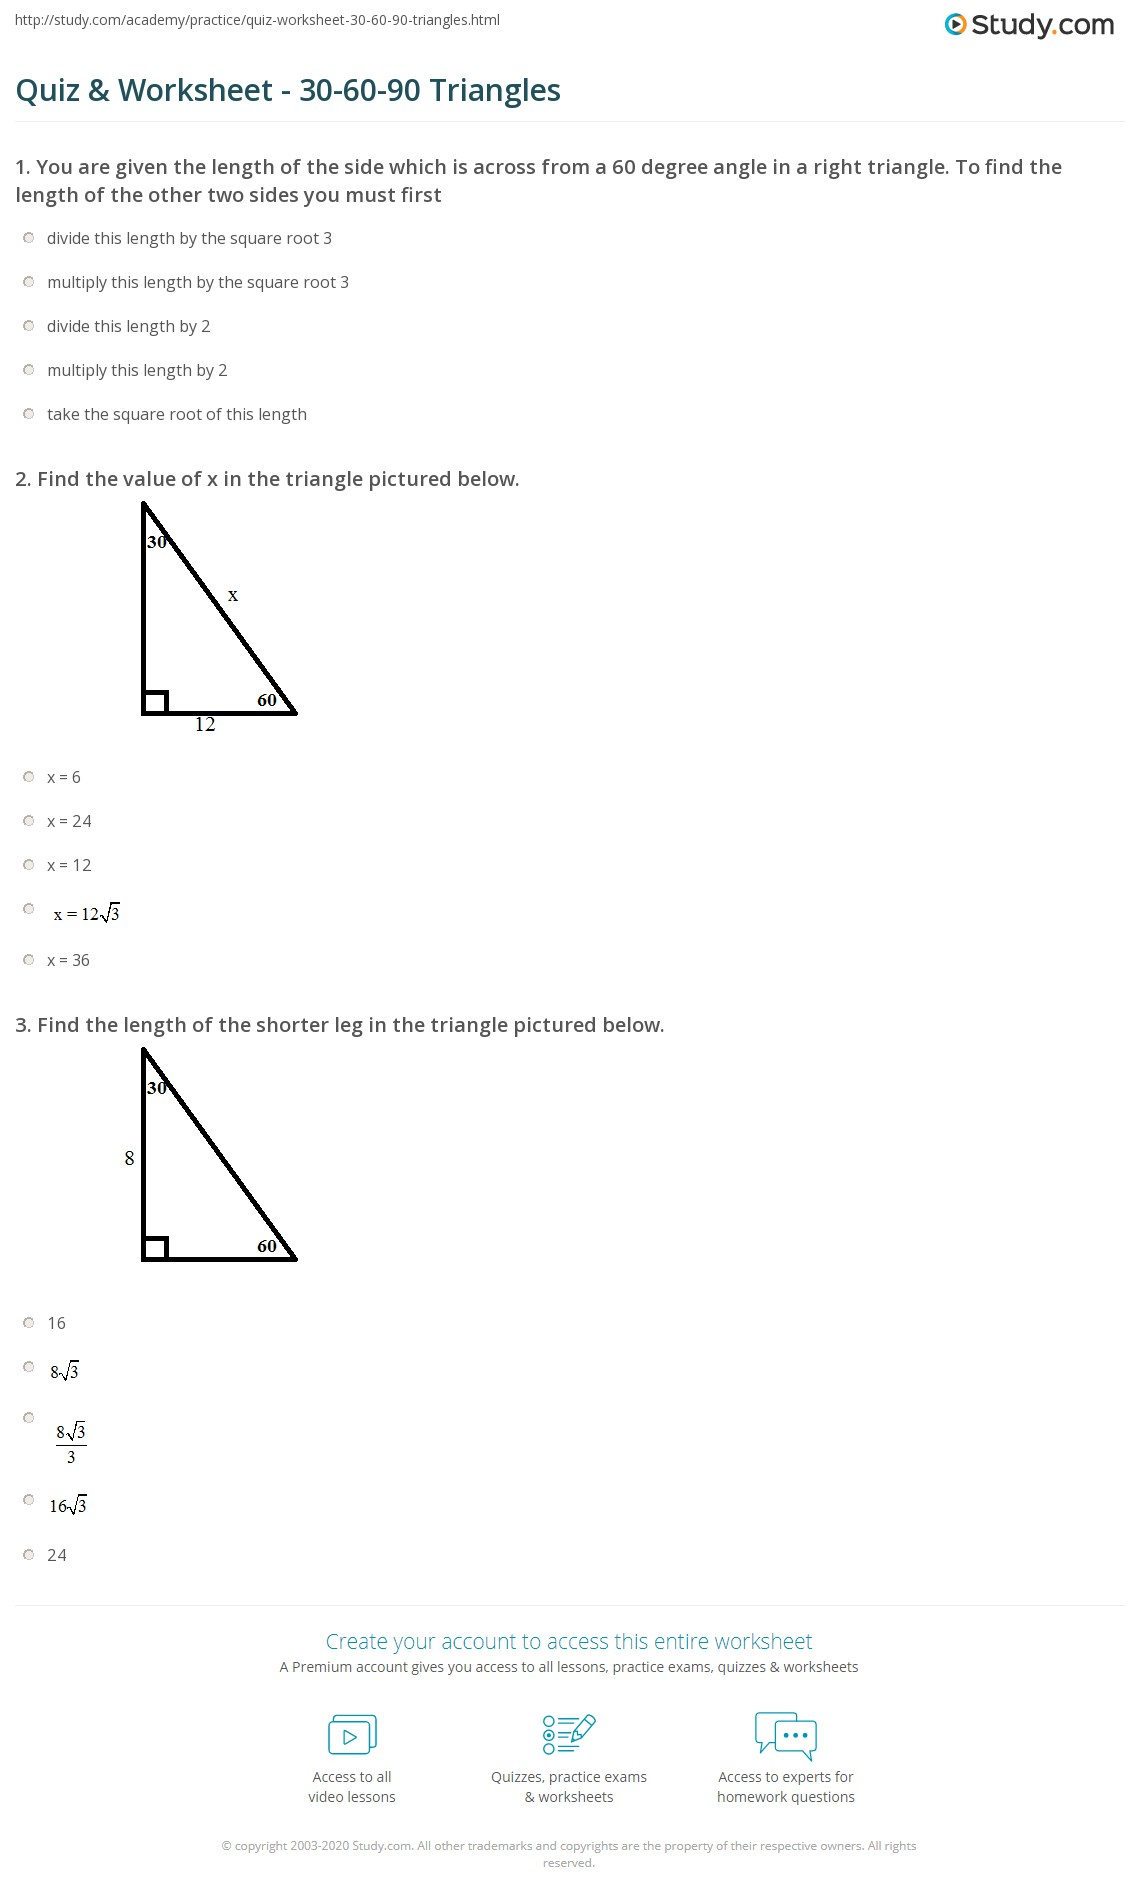 worksheet 30-60-90 Triangle Worksheet With Answers quiz worksheet 30 60 90 triangles study com print triangle theorem properties formula worksheet